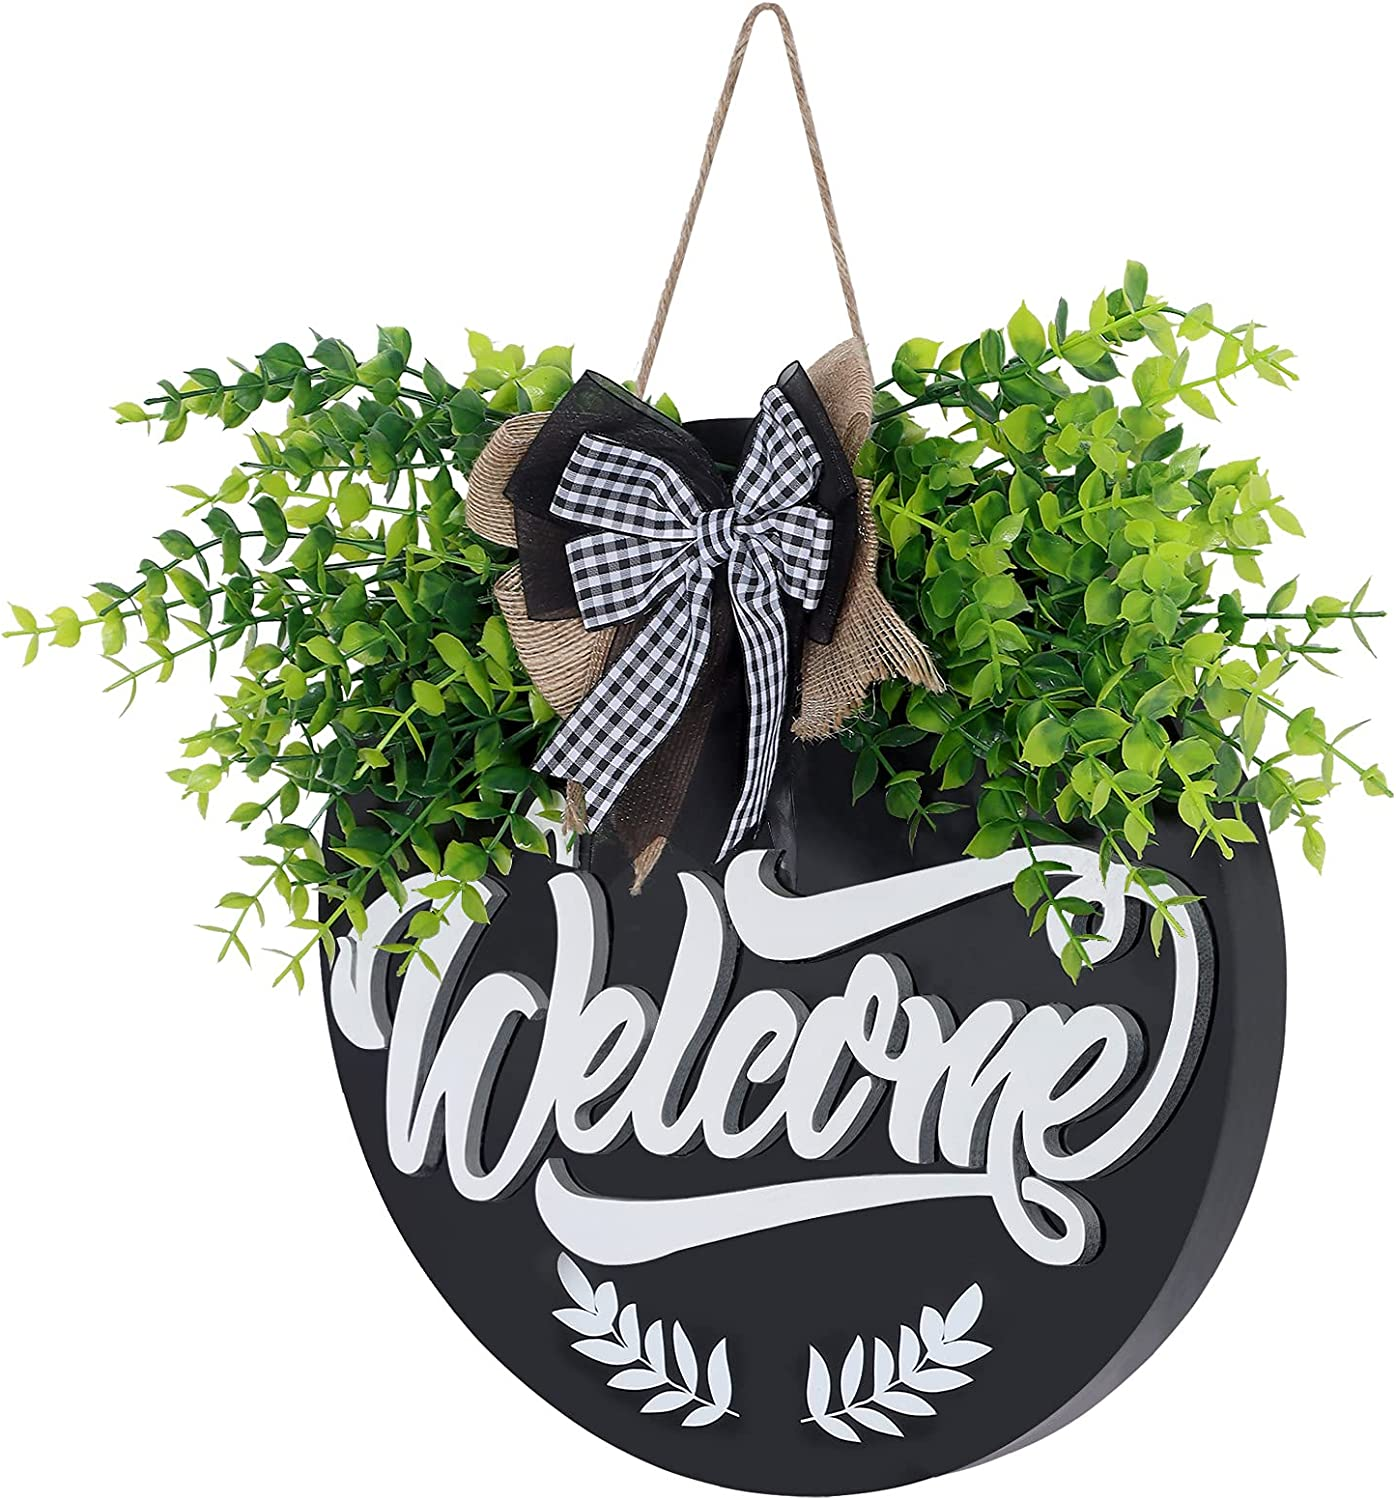 Welcome Sign for Front Door Decor,Welcome Door Sign for Front Porch Decor,Thick Wood Door Decorations Hanging Outdoor for Farmhouse Decor, Welcome Door Hanger Front Door Sign for Housewarming Gift